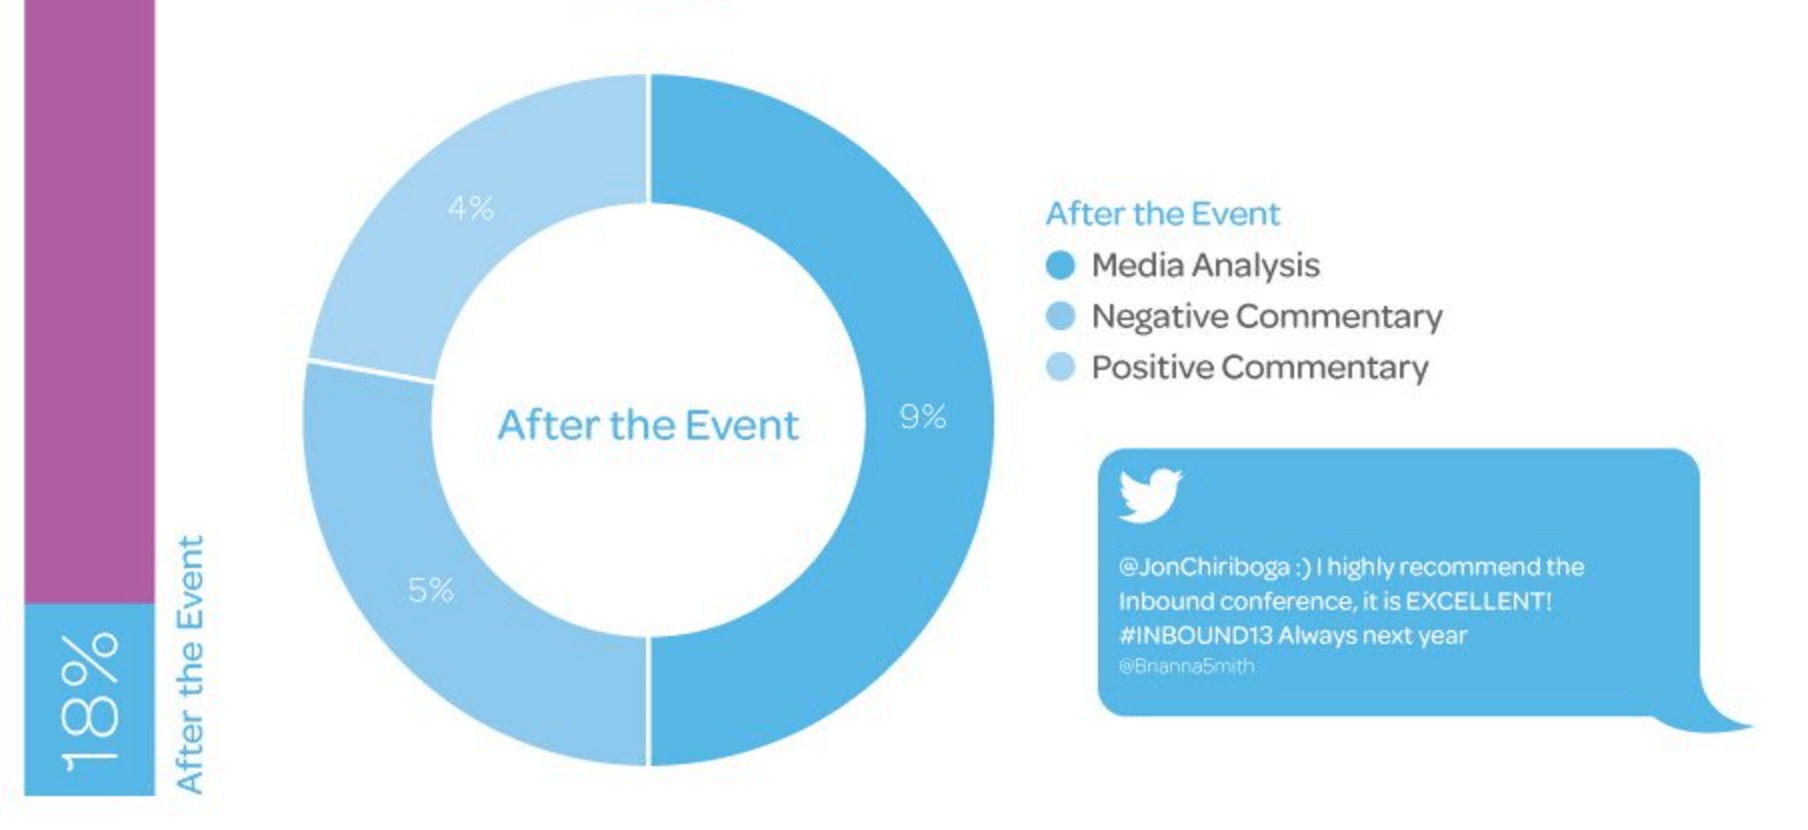 Social-media-event-marketing-after-the-event Social Media Event Marketing: How to Capitalize on Trends and What to Post